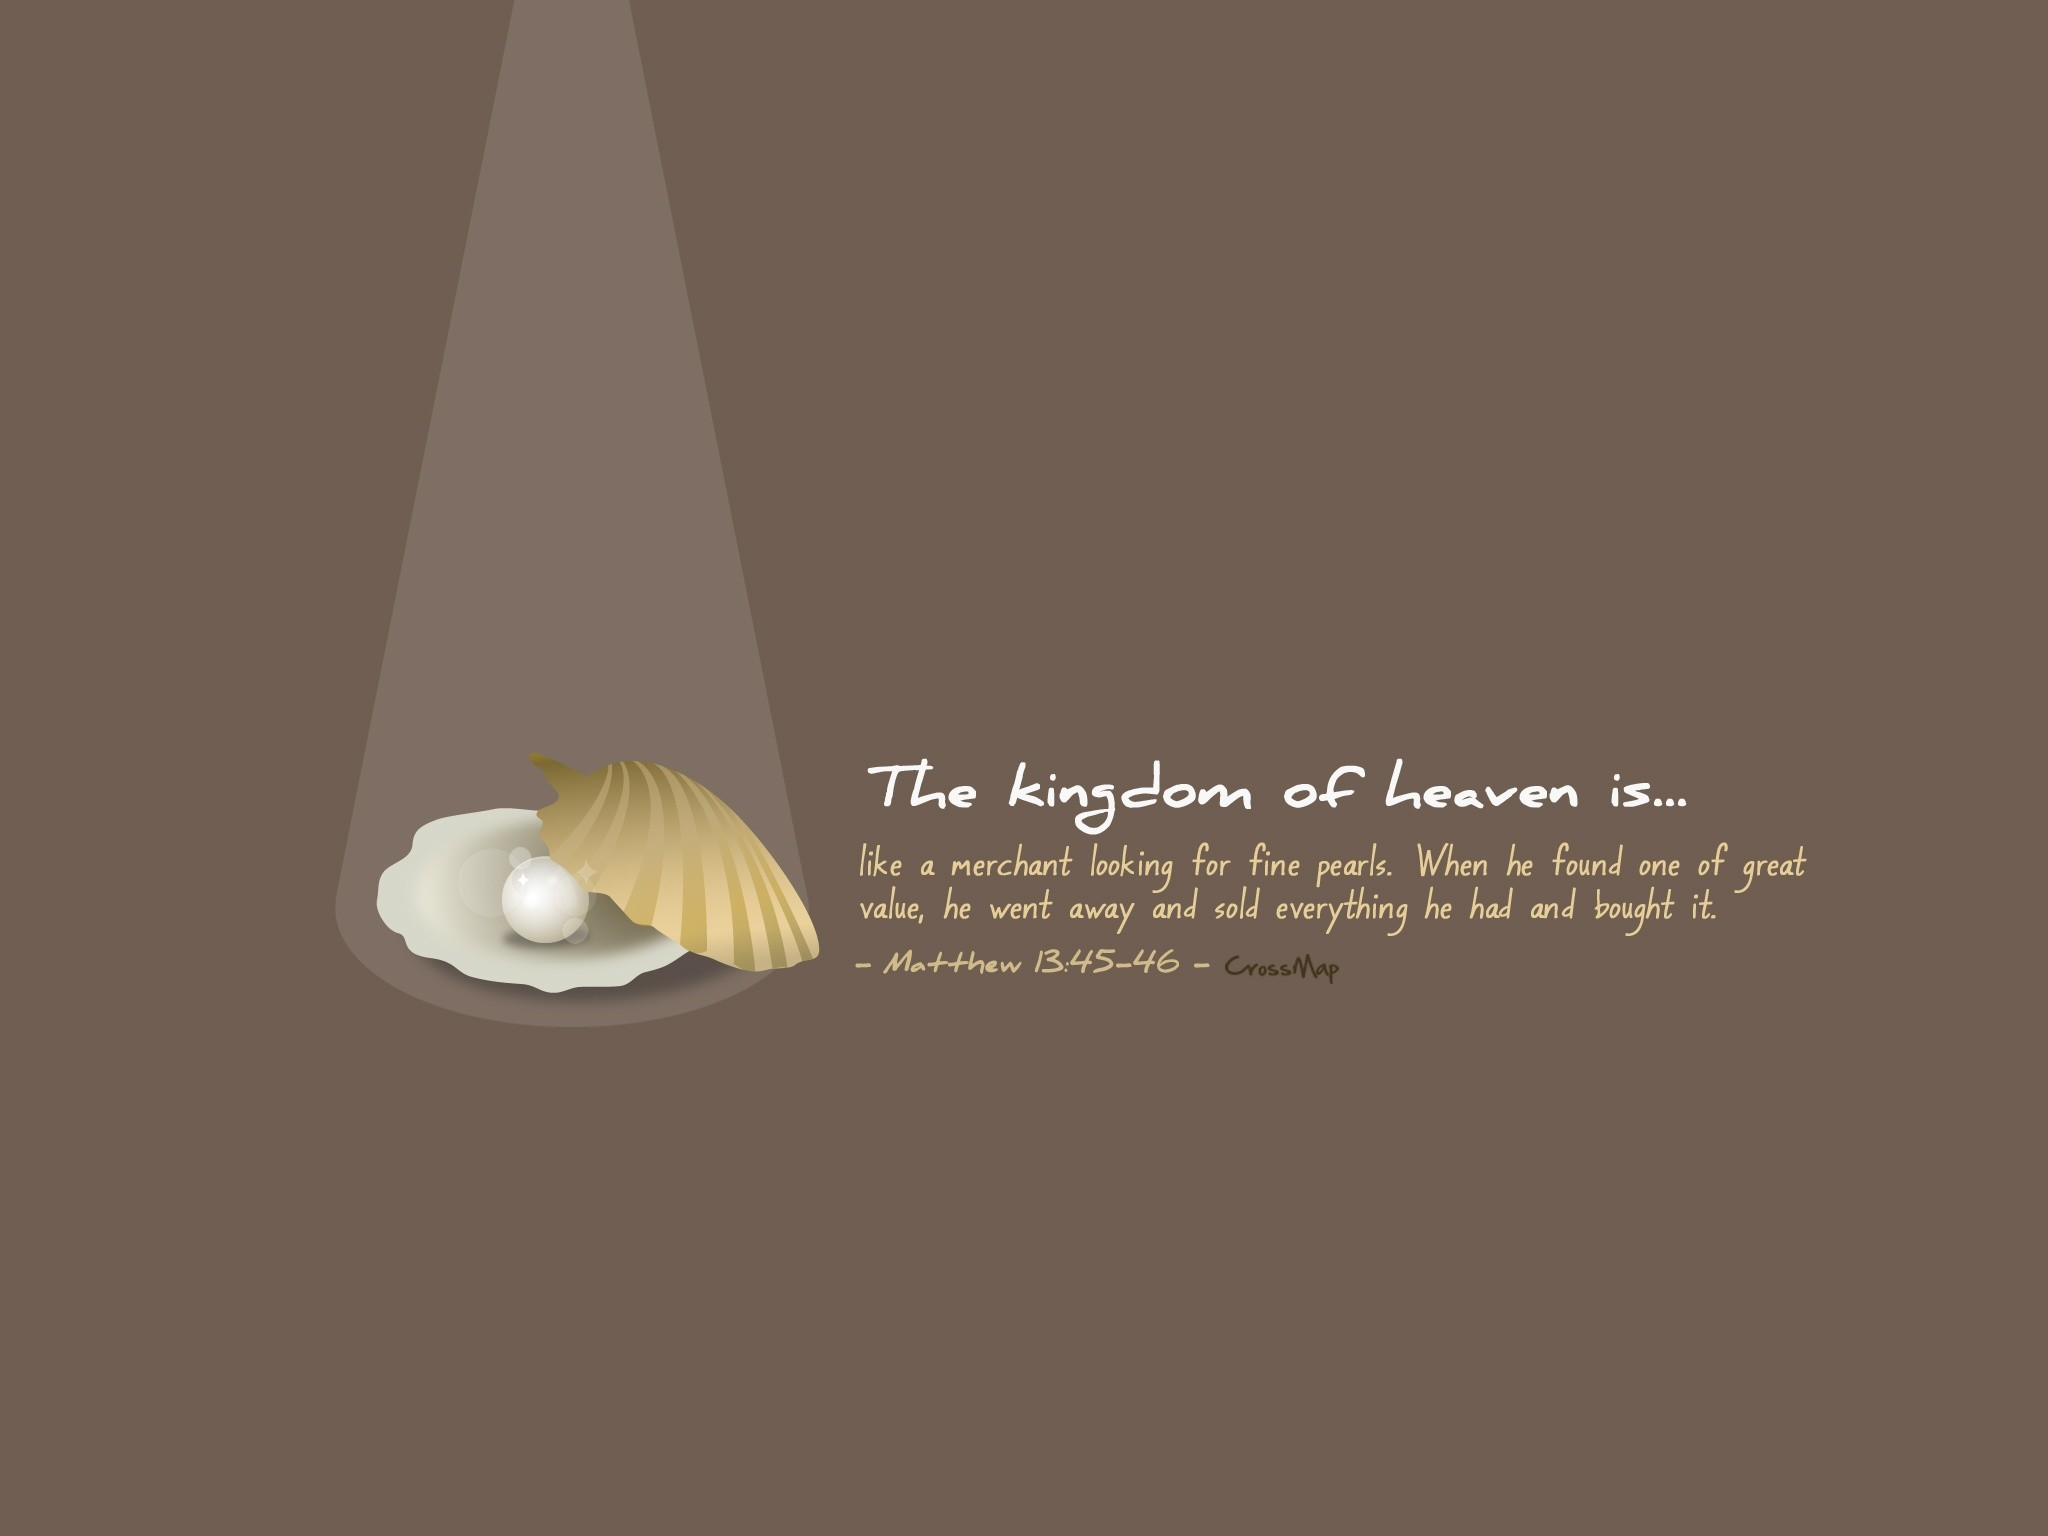 The Kingdom of Heaven is